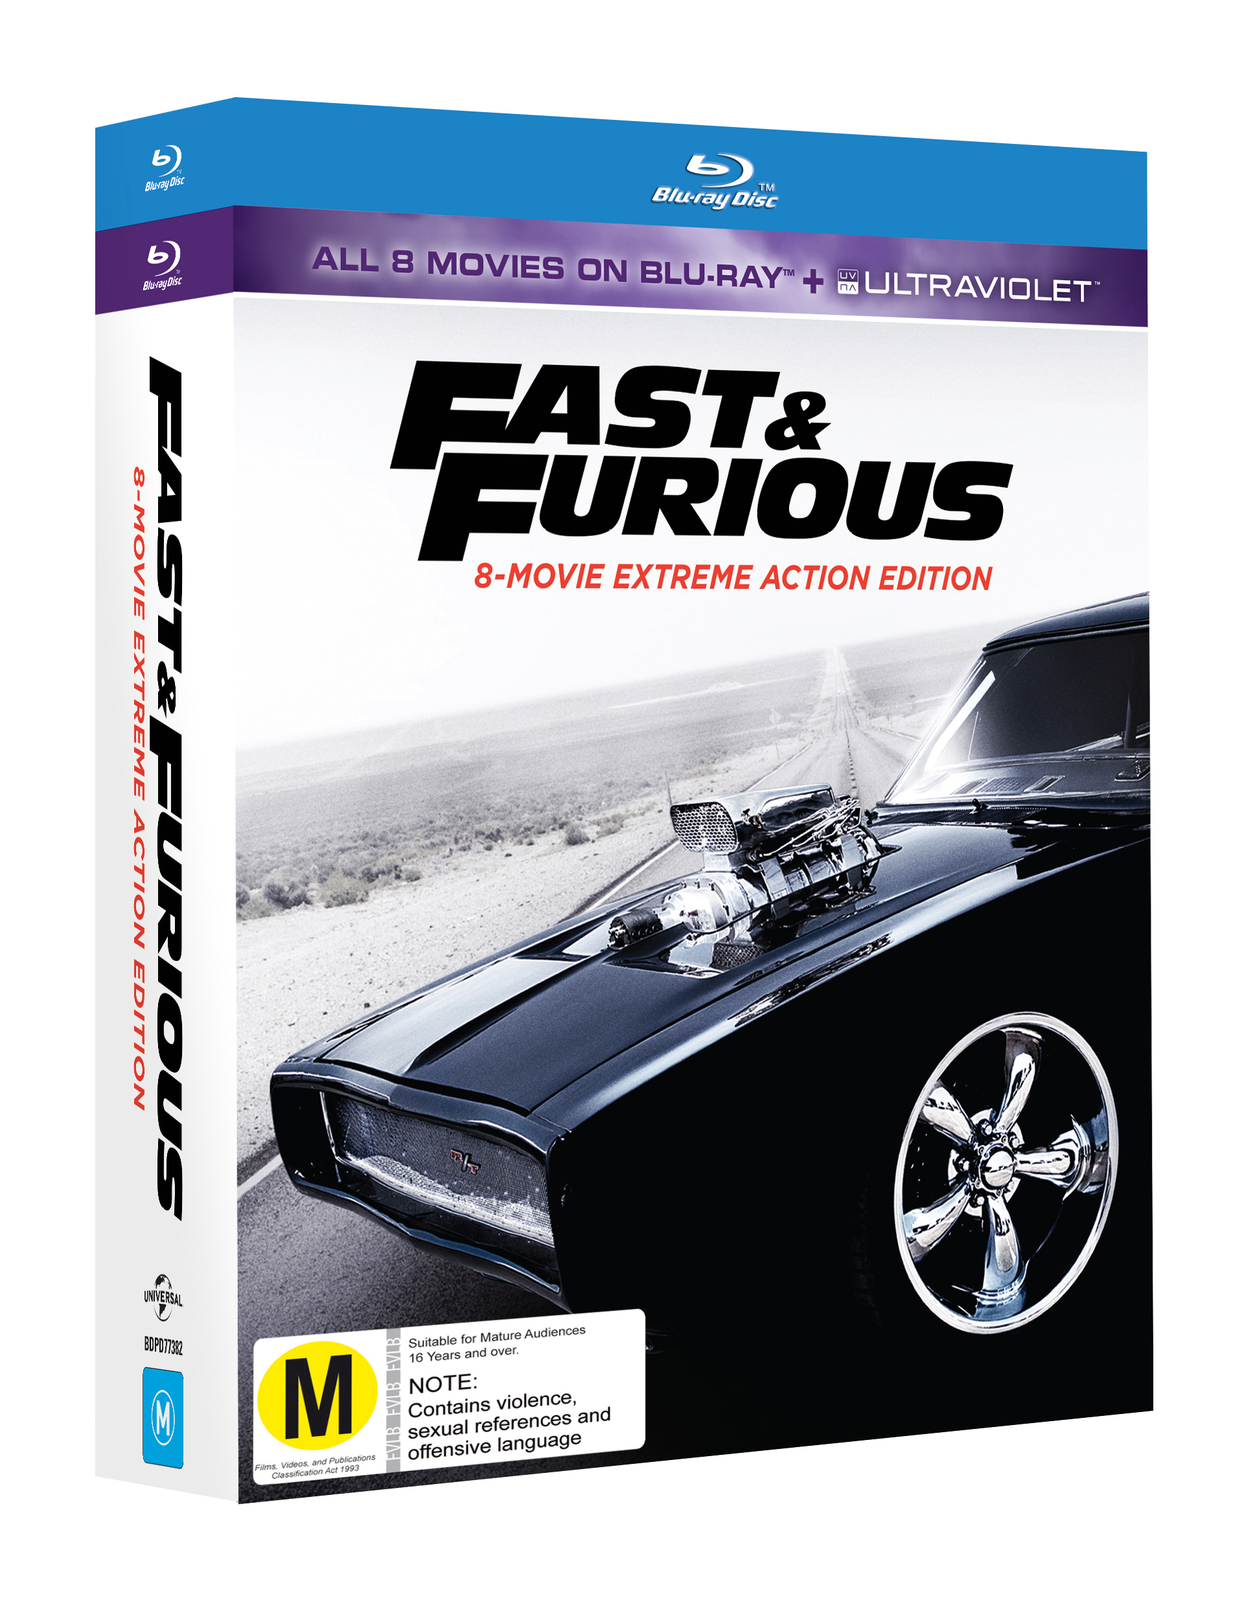 fast furious 8 movie collection blu ray buy now at mighty ape nz. Black Bedroom Furniture Sets. Home Design Ideas